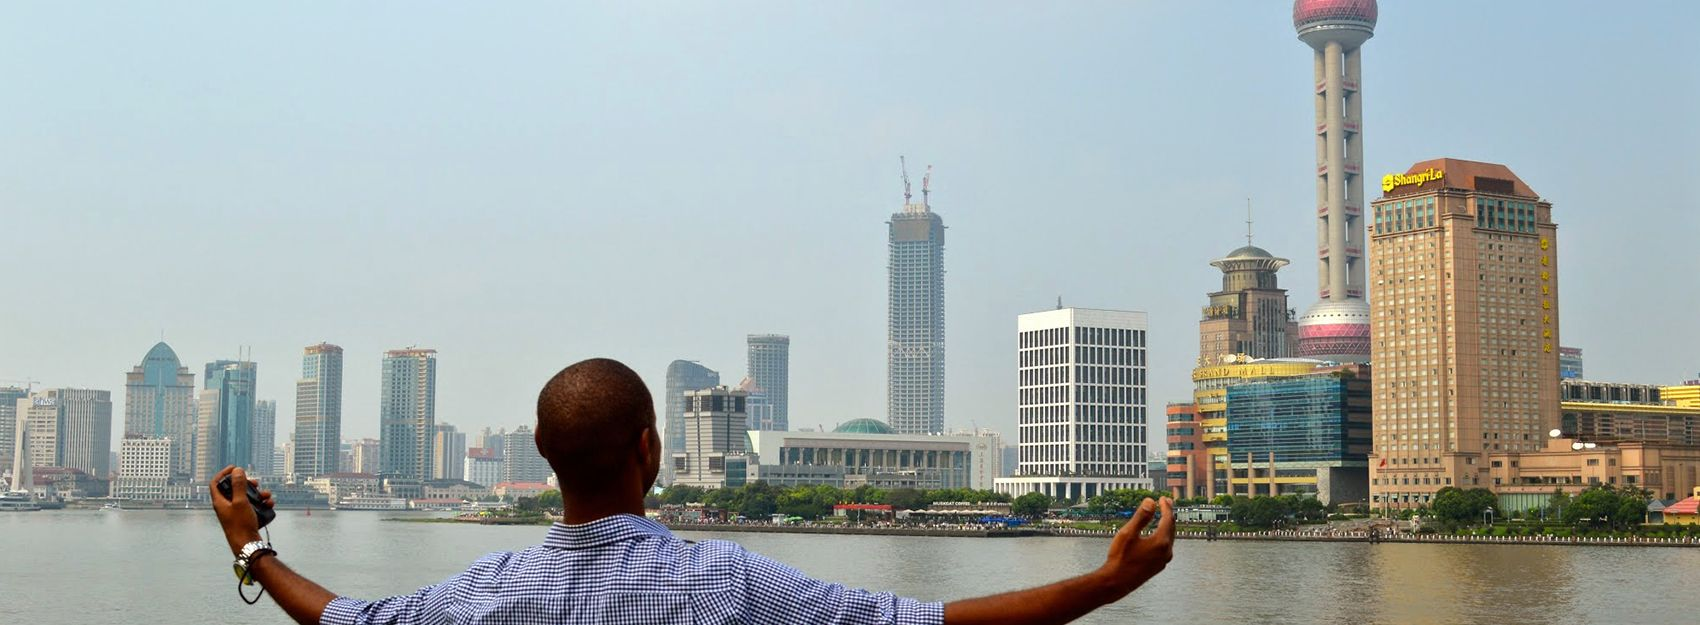 Student in front of Shanghai skyline